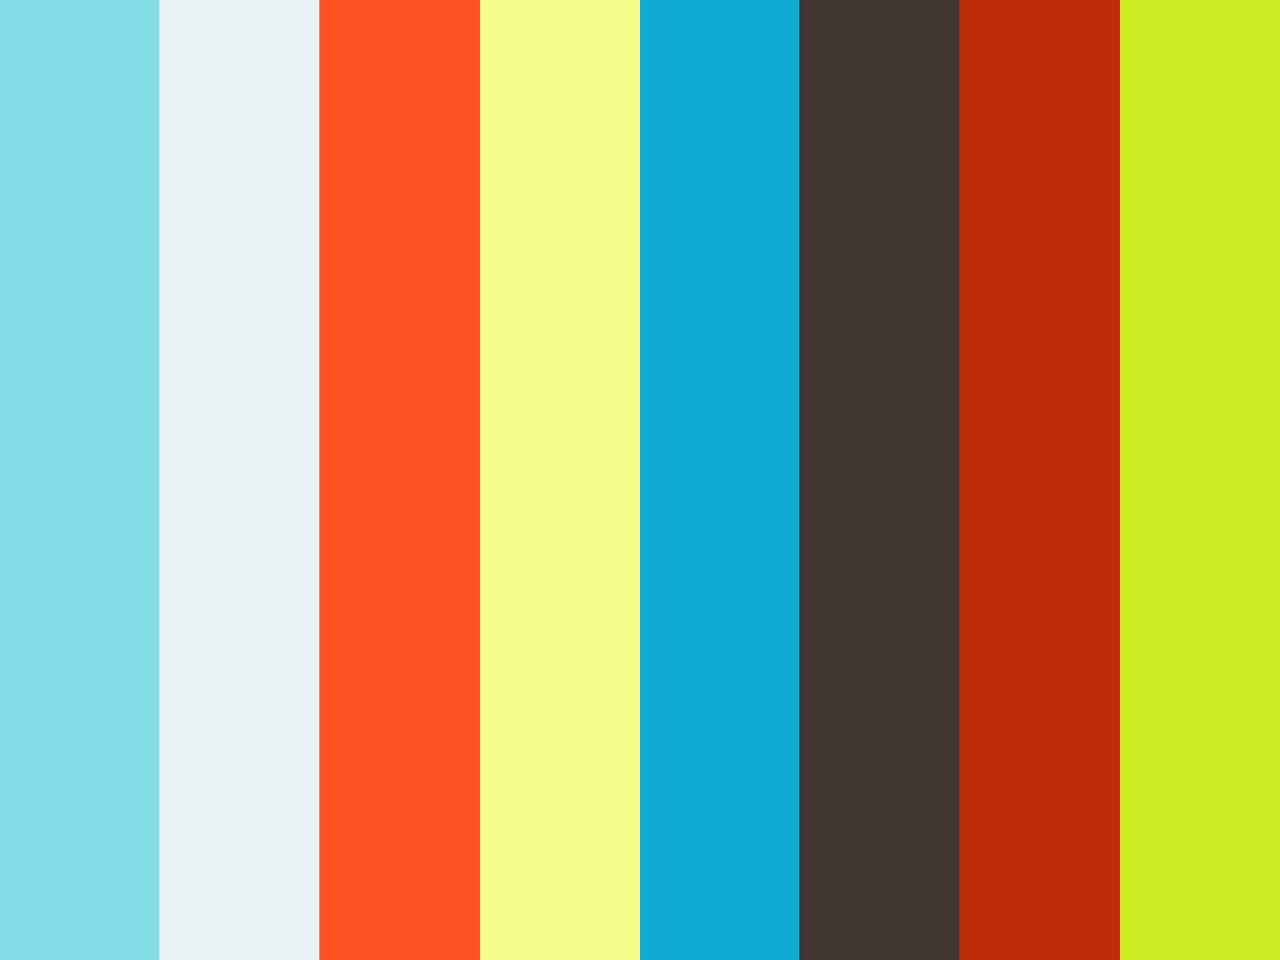 naltrexone crohns treatment